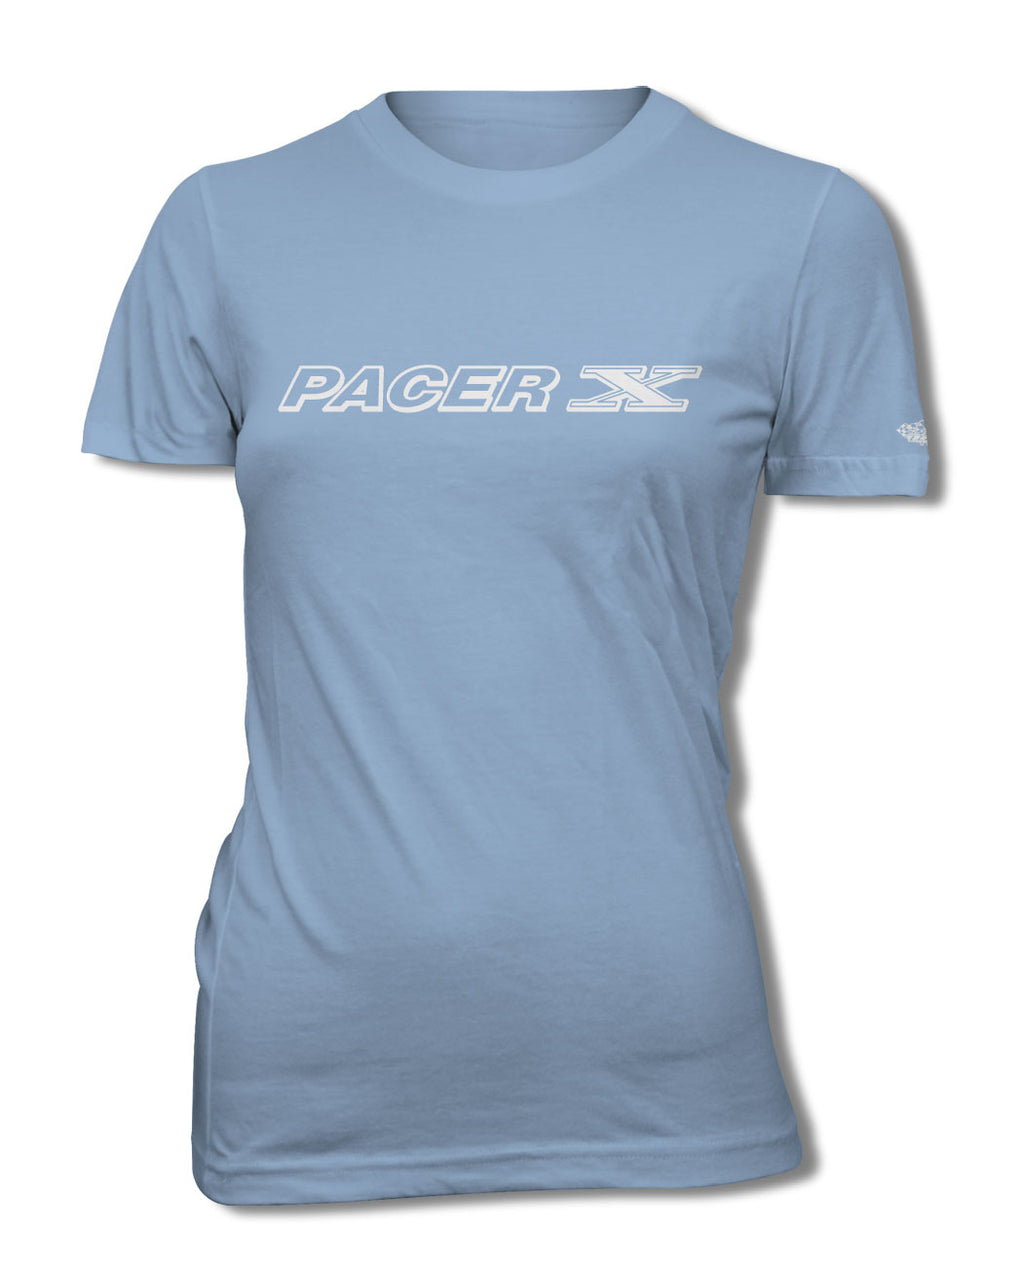 1975 - 1980 AMC Pacer X Emblem T-Shirt - Women - Racing Emblem